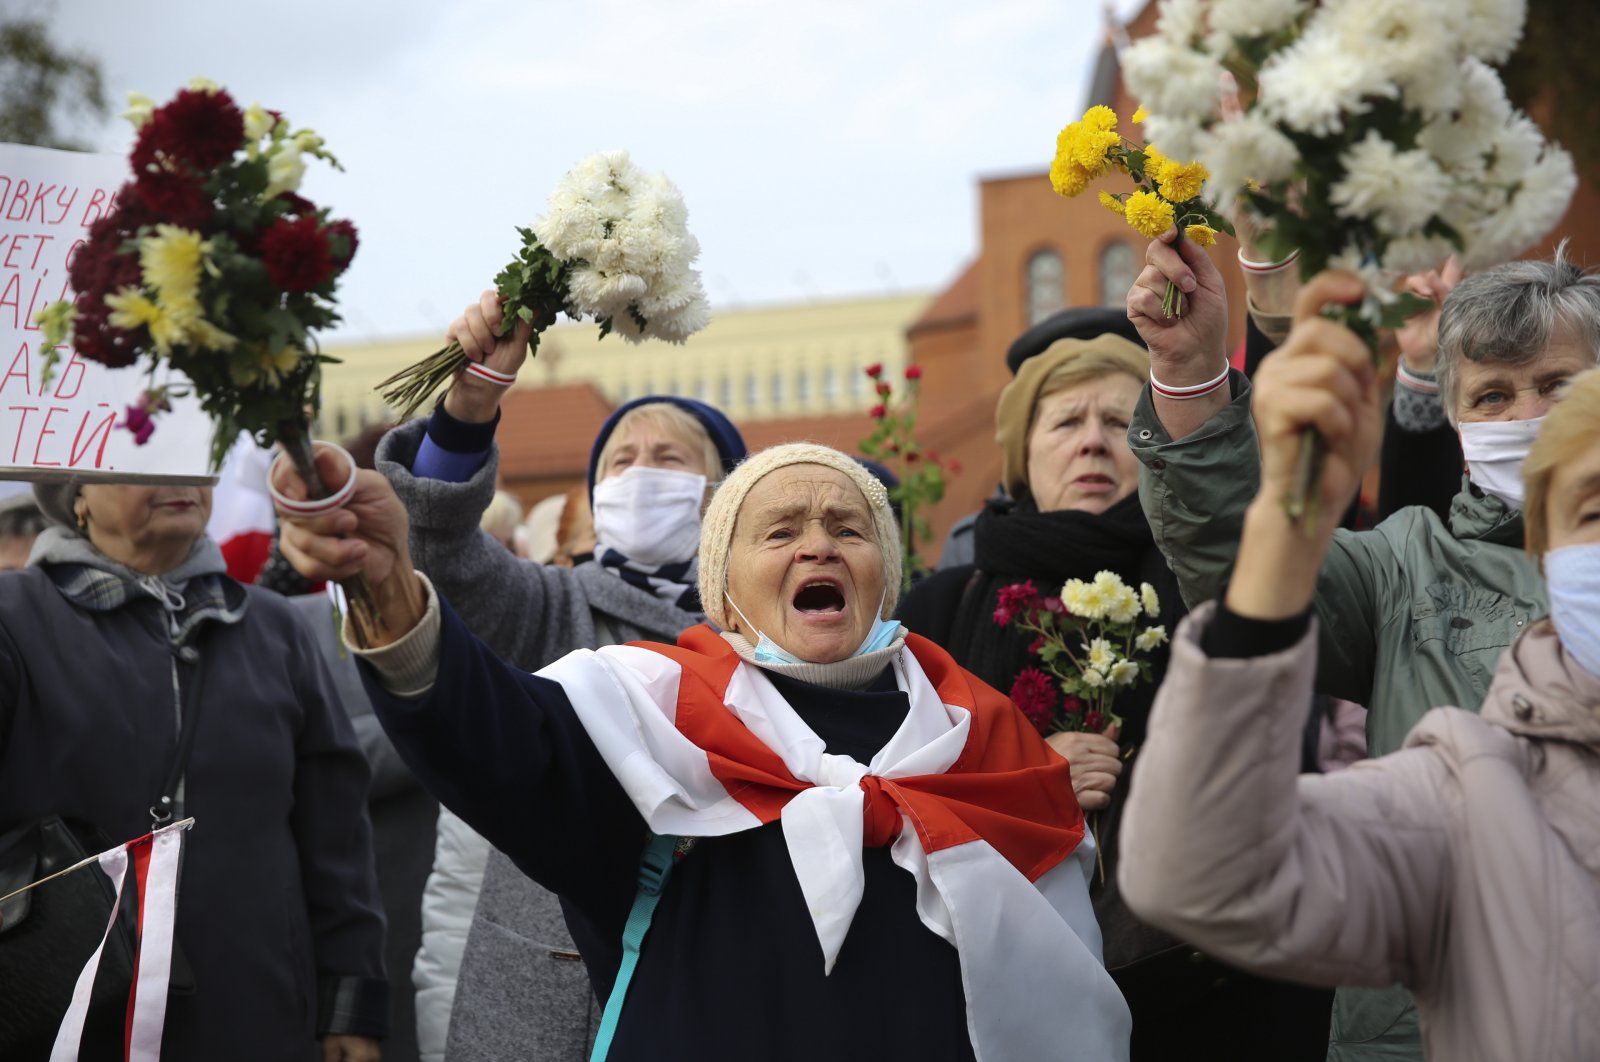 People, most of them pensioners, wave bunches of flowers during an opposition rally to protest the official presidential election results in Minsk, Belarus, Oct. 26, 2020. (AP Photo)